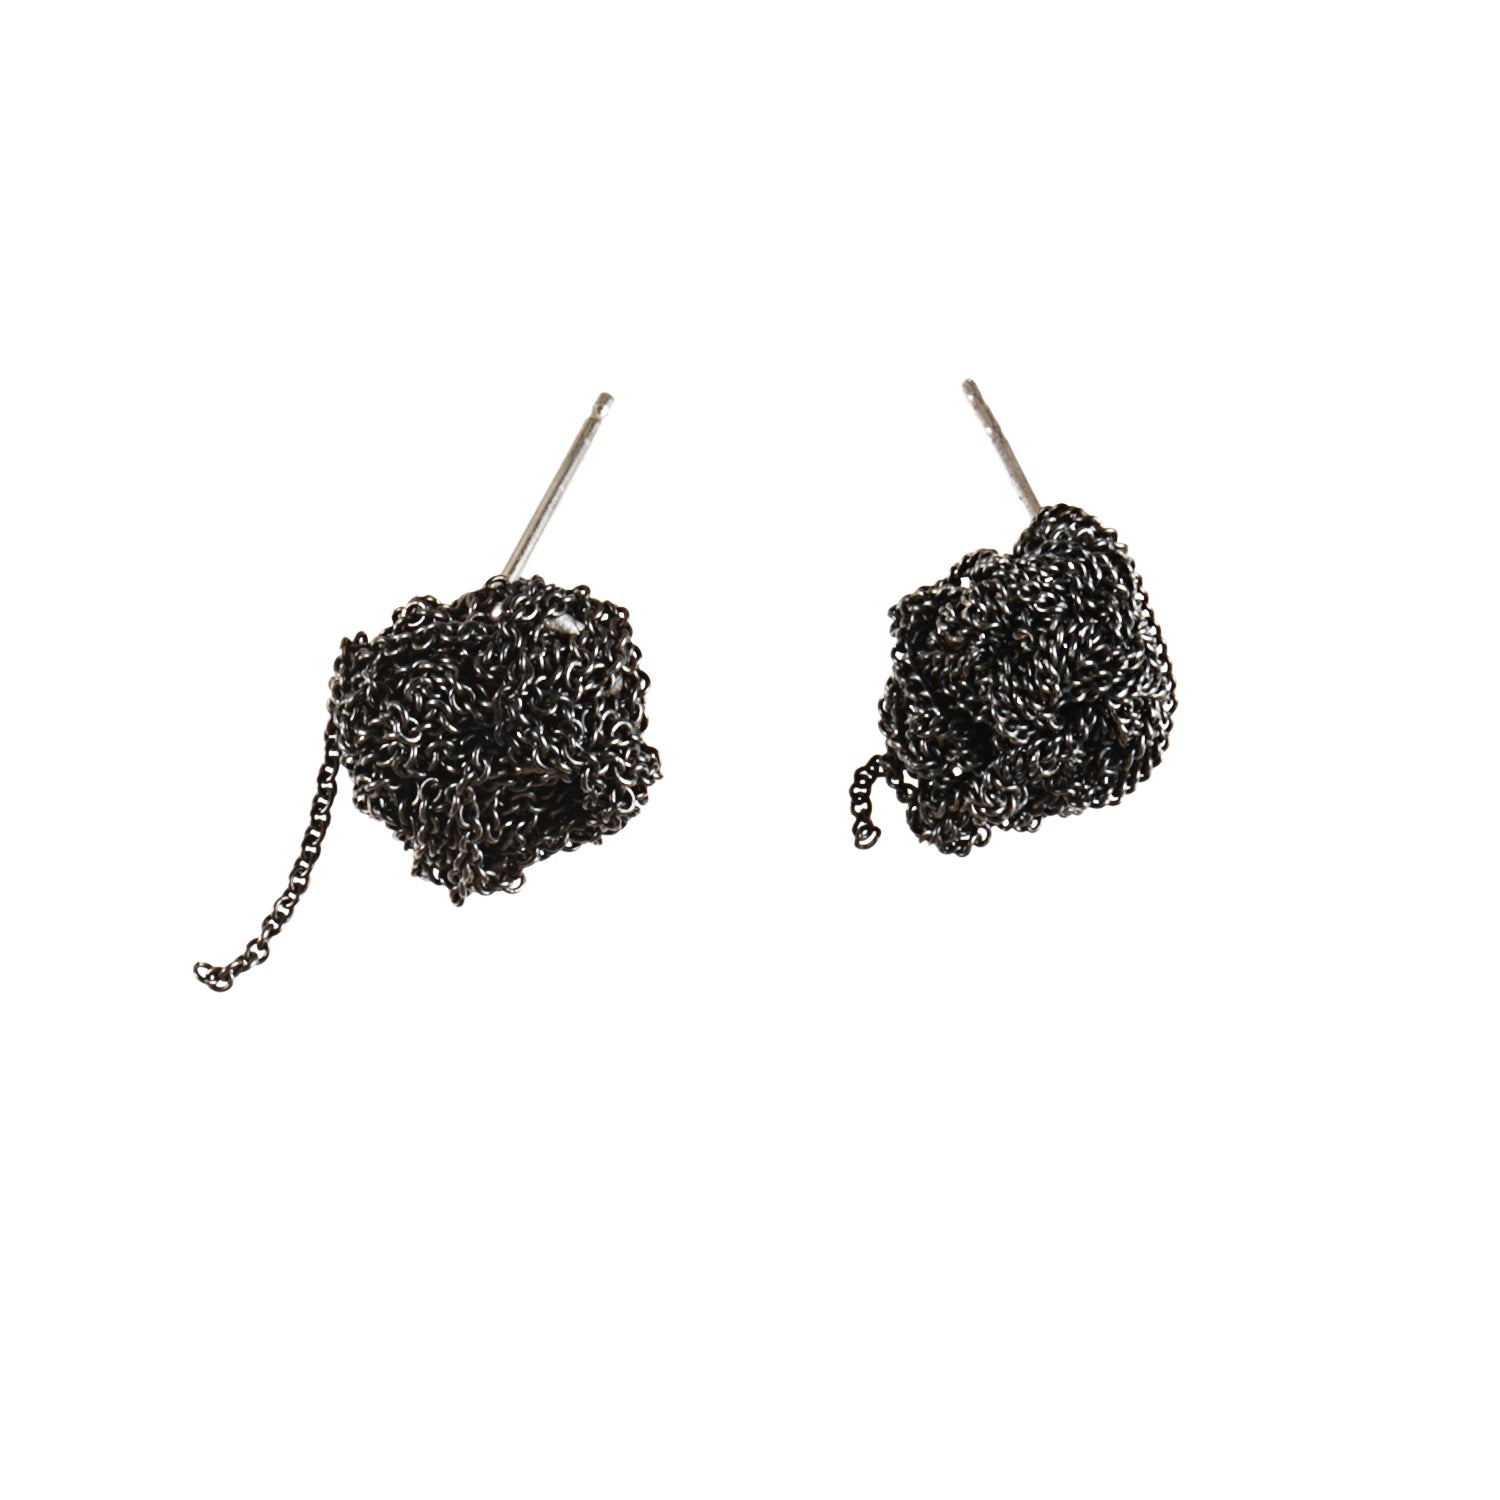 Bead Earrings in Charcoal